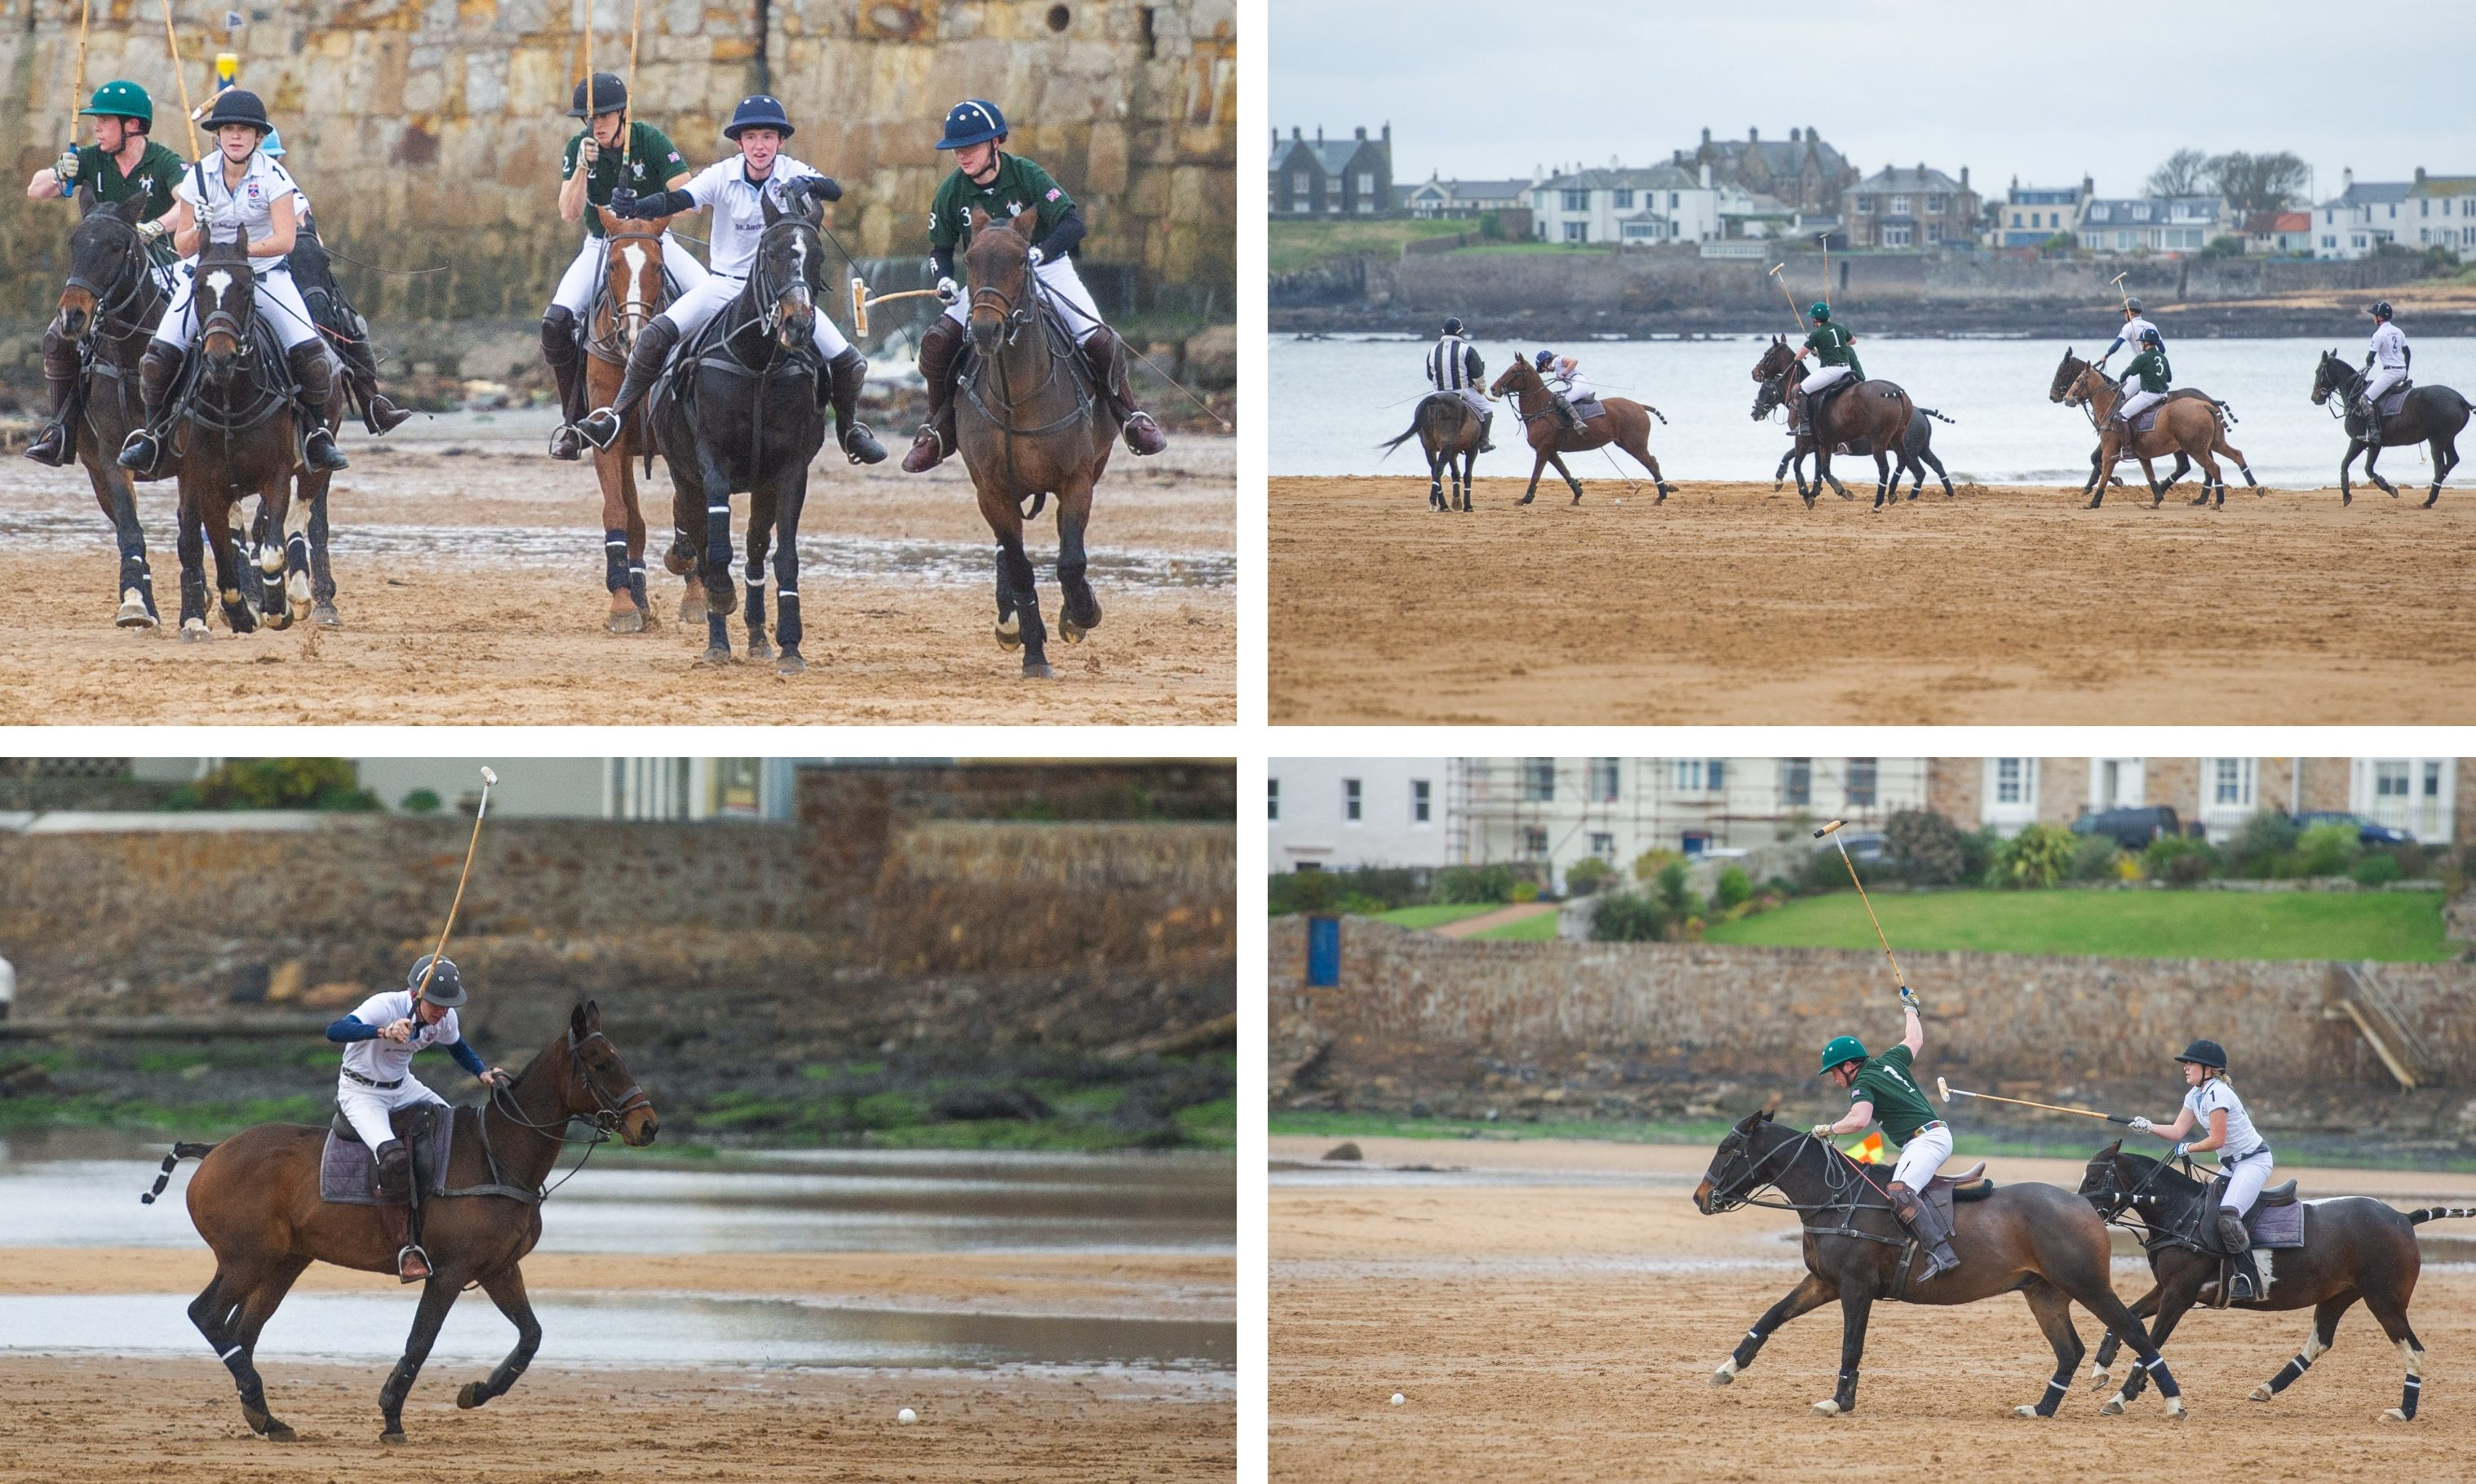 Polo at Elie Beach.